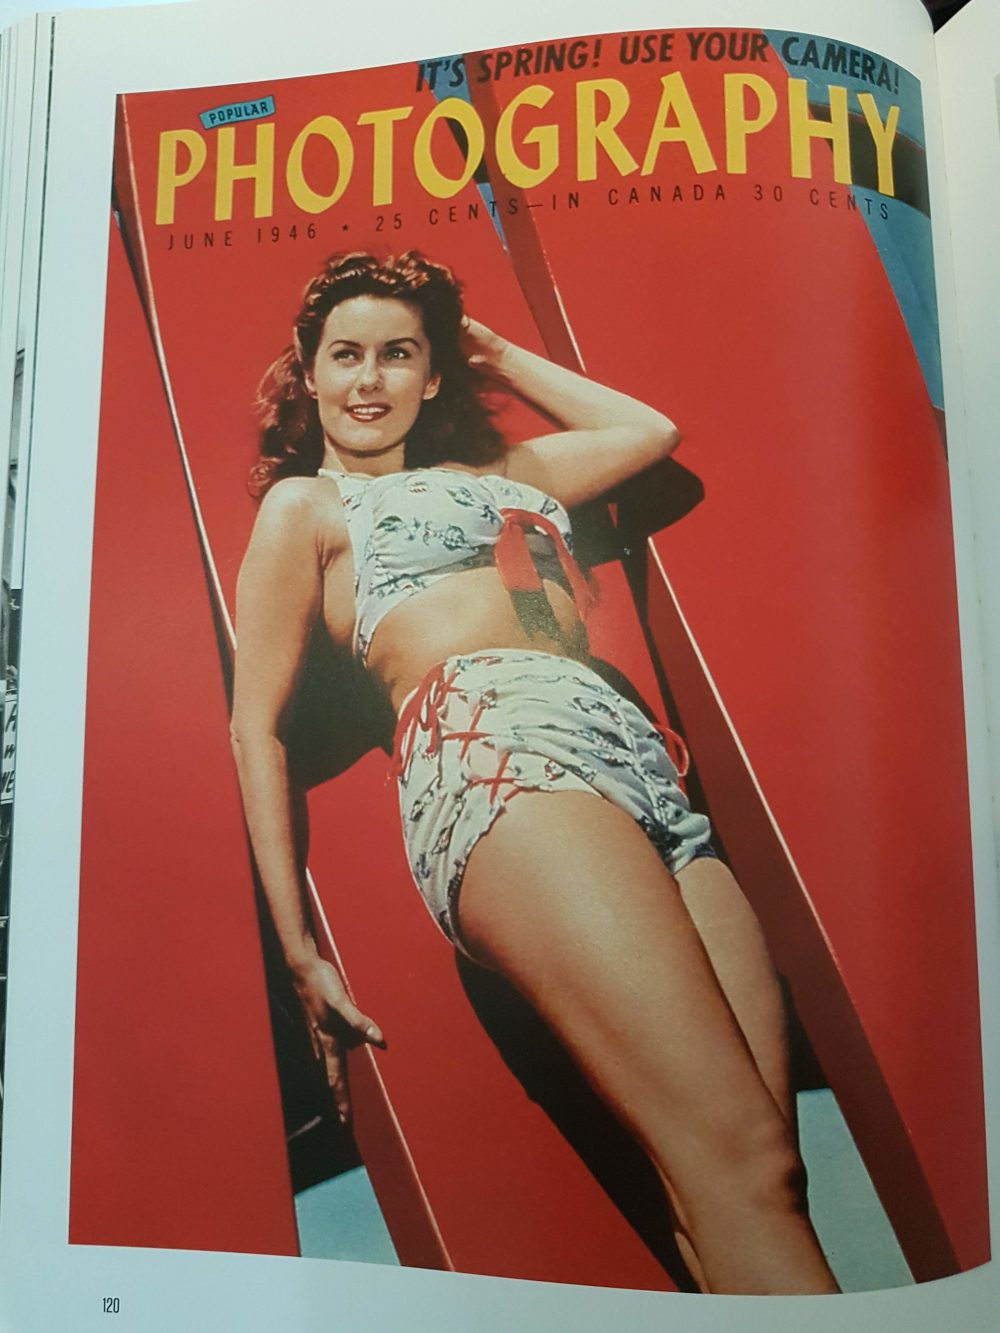 a photo of a lady in a old style bikini on a surf board